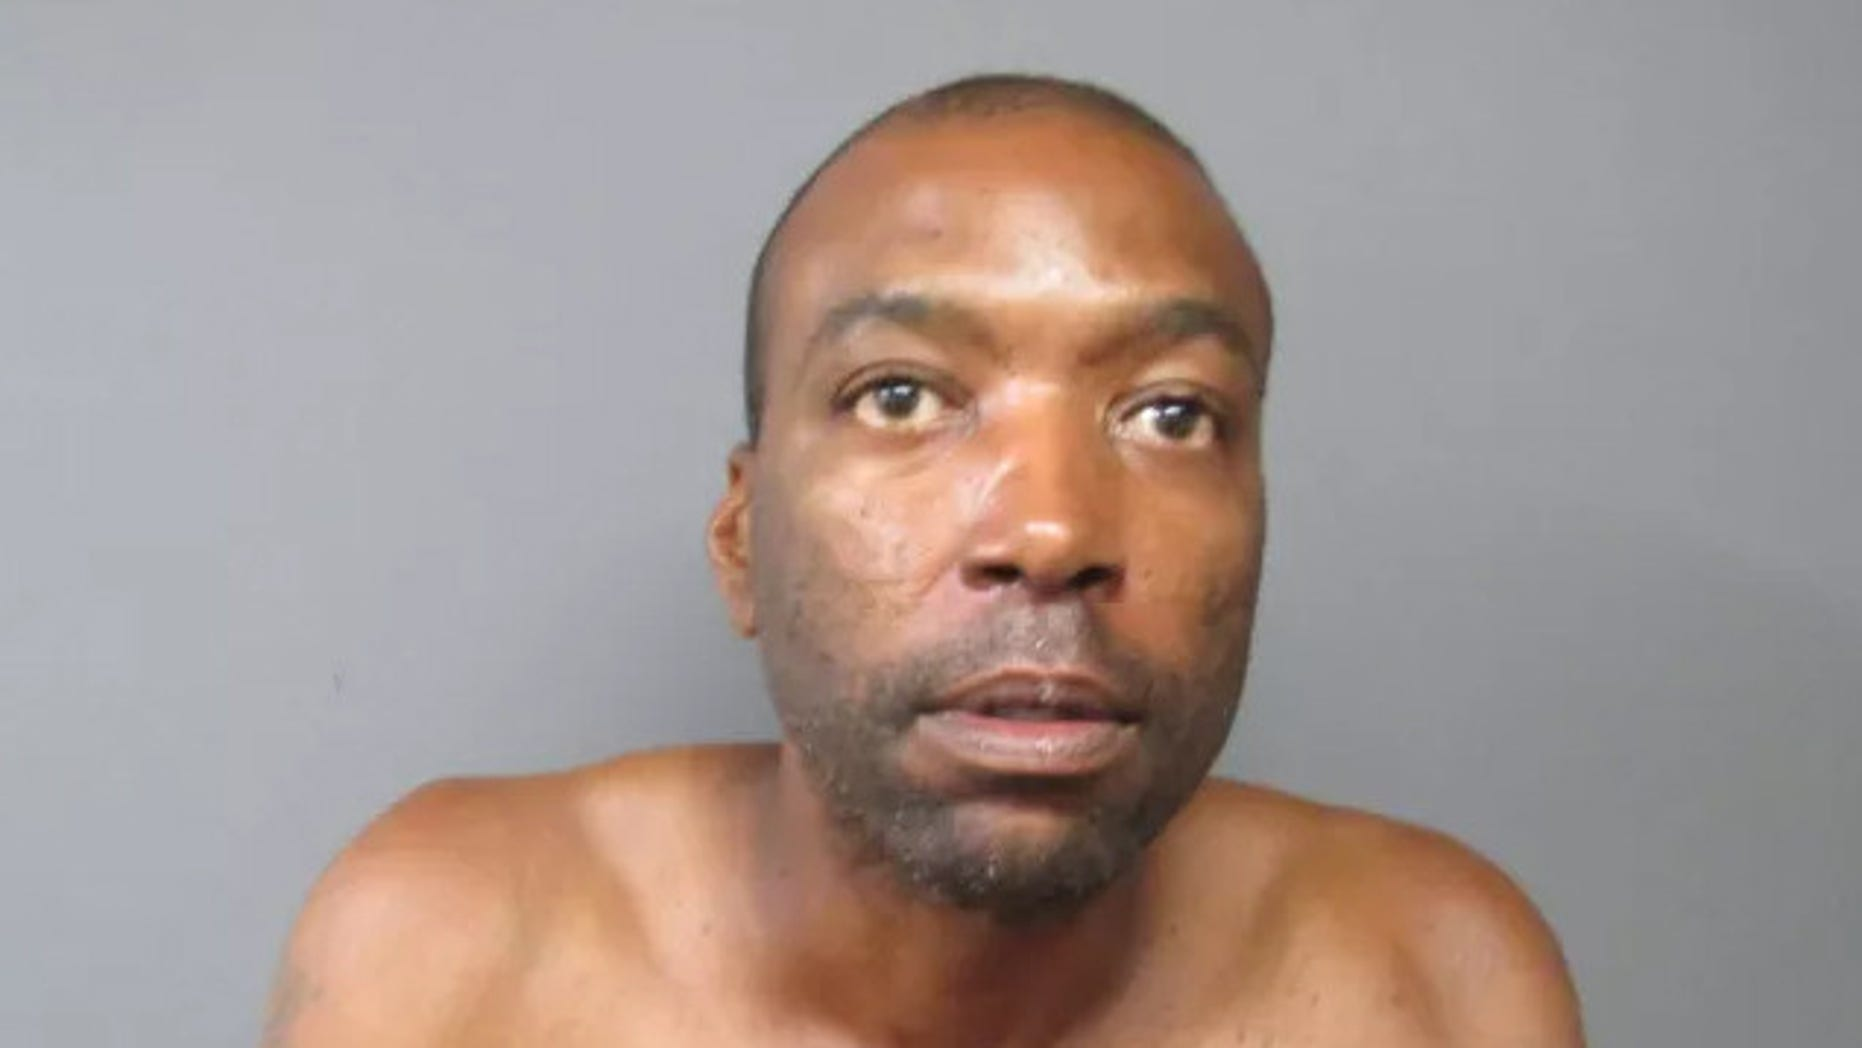 James King was arrested in connection with the home invasion in Hackensack, N.J.